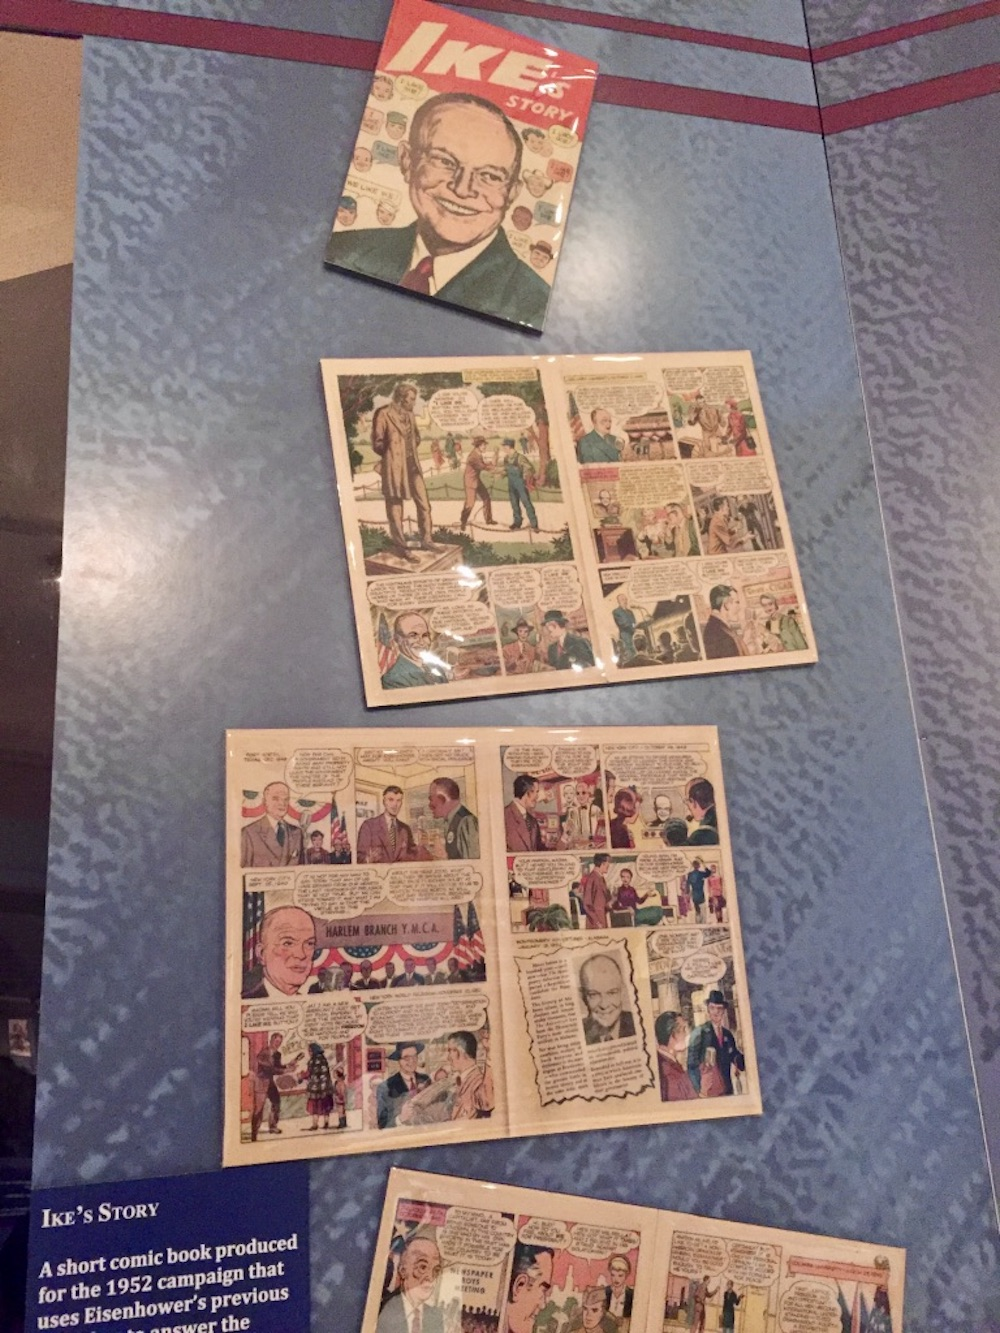 Ike comic book on display at the Eisenhower Presidential Library and Museum in Abilene, Kansas